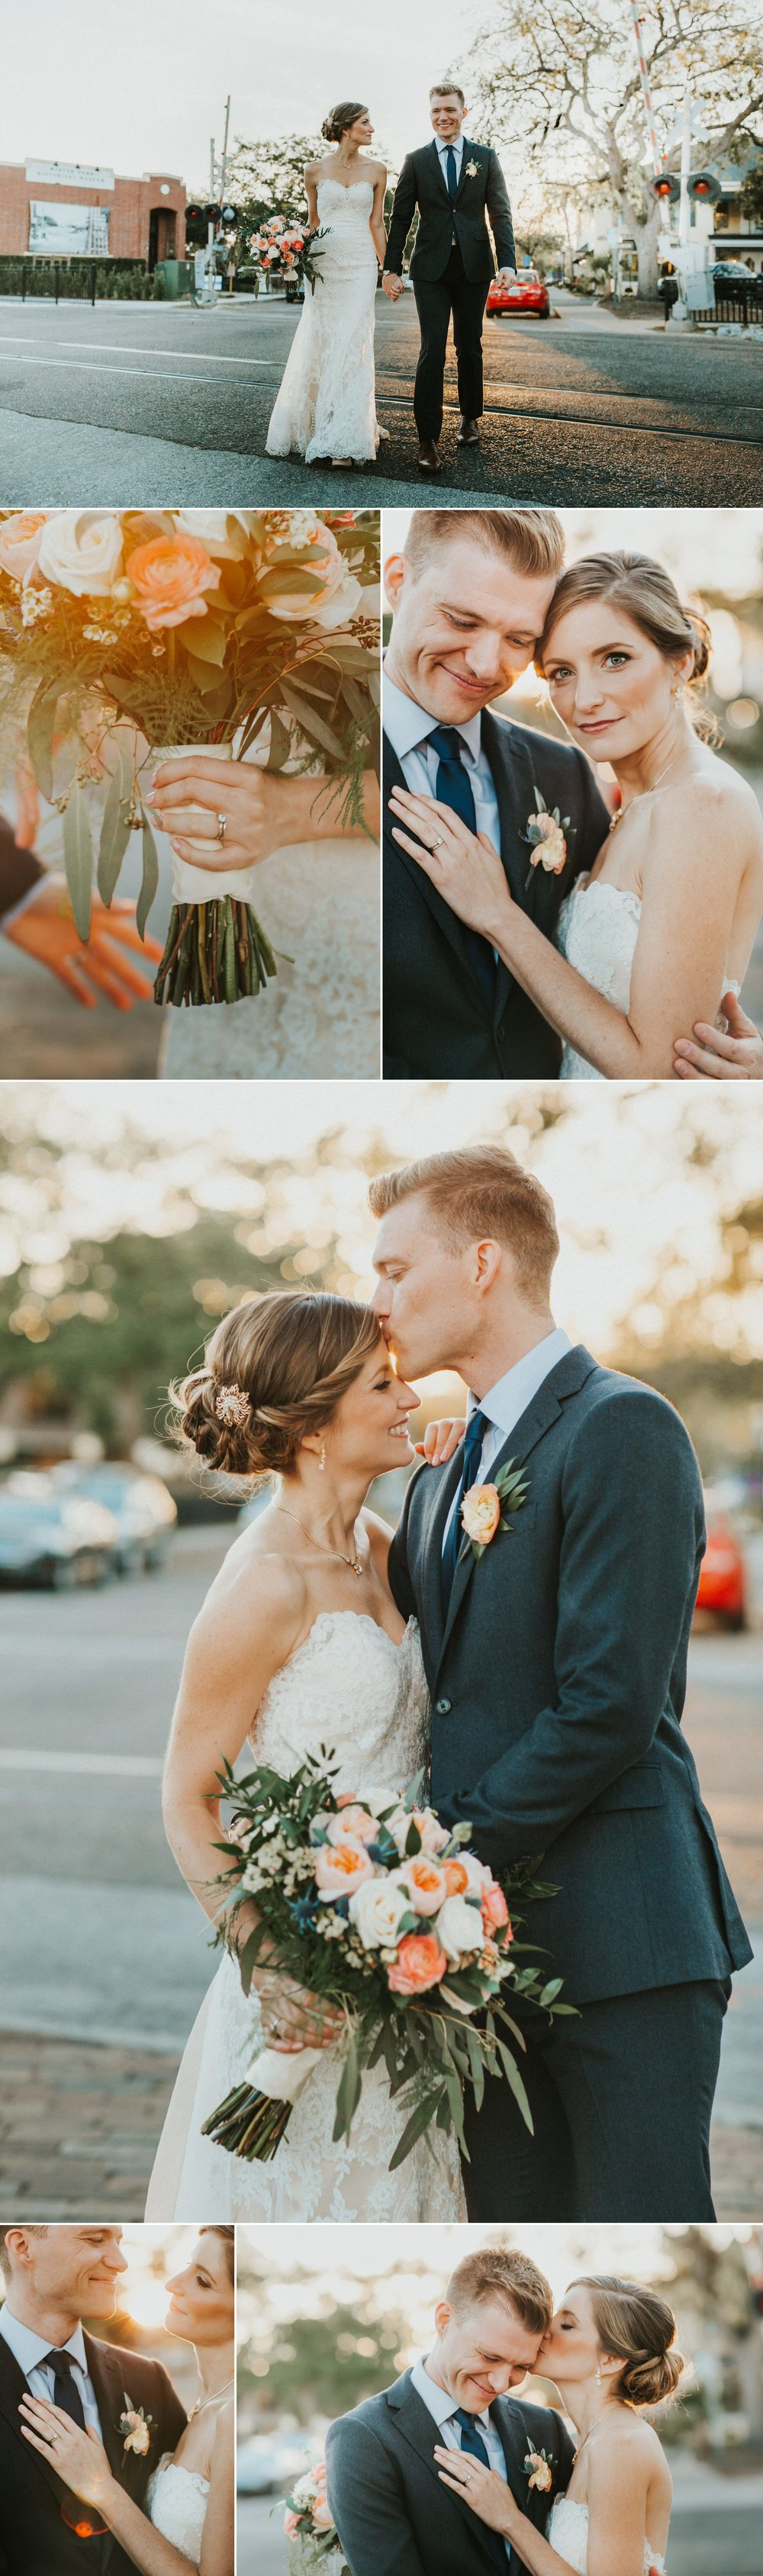 Winter Park farmers market wedding- bohemian chic floral wedding photography by Shaina DeCiryan19.jpg